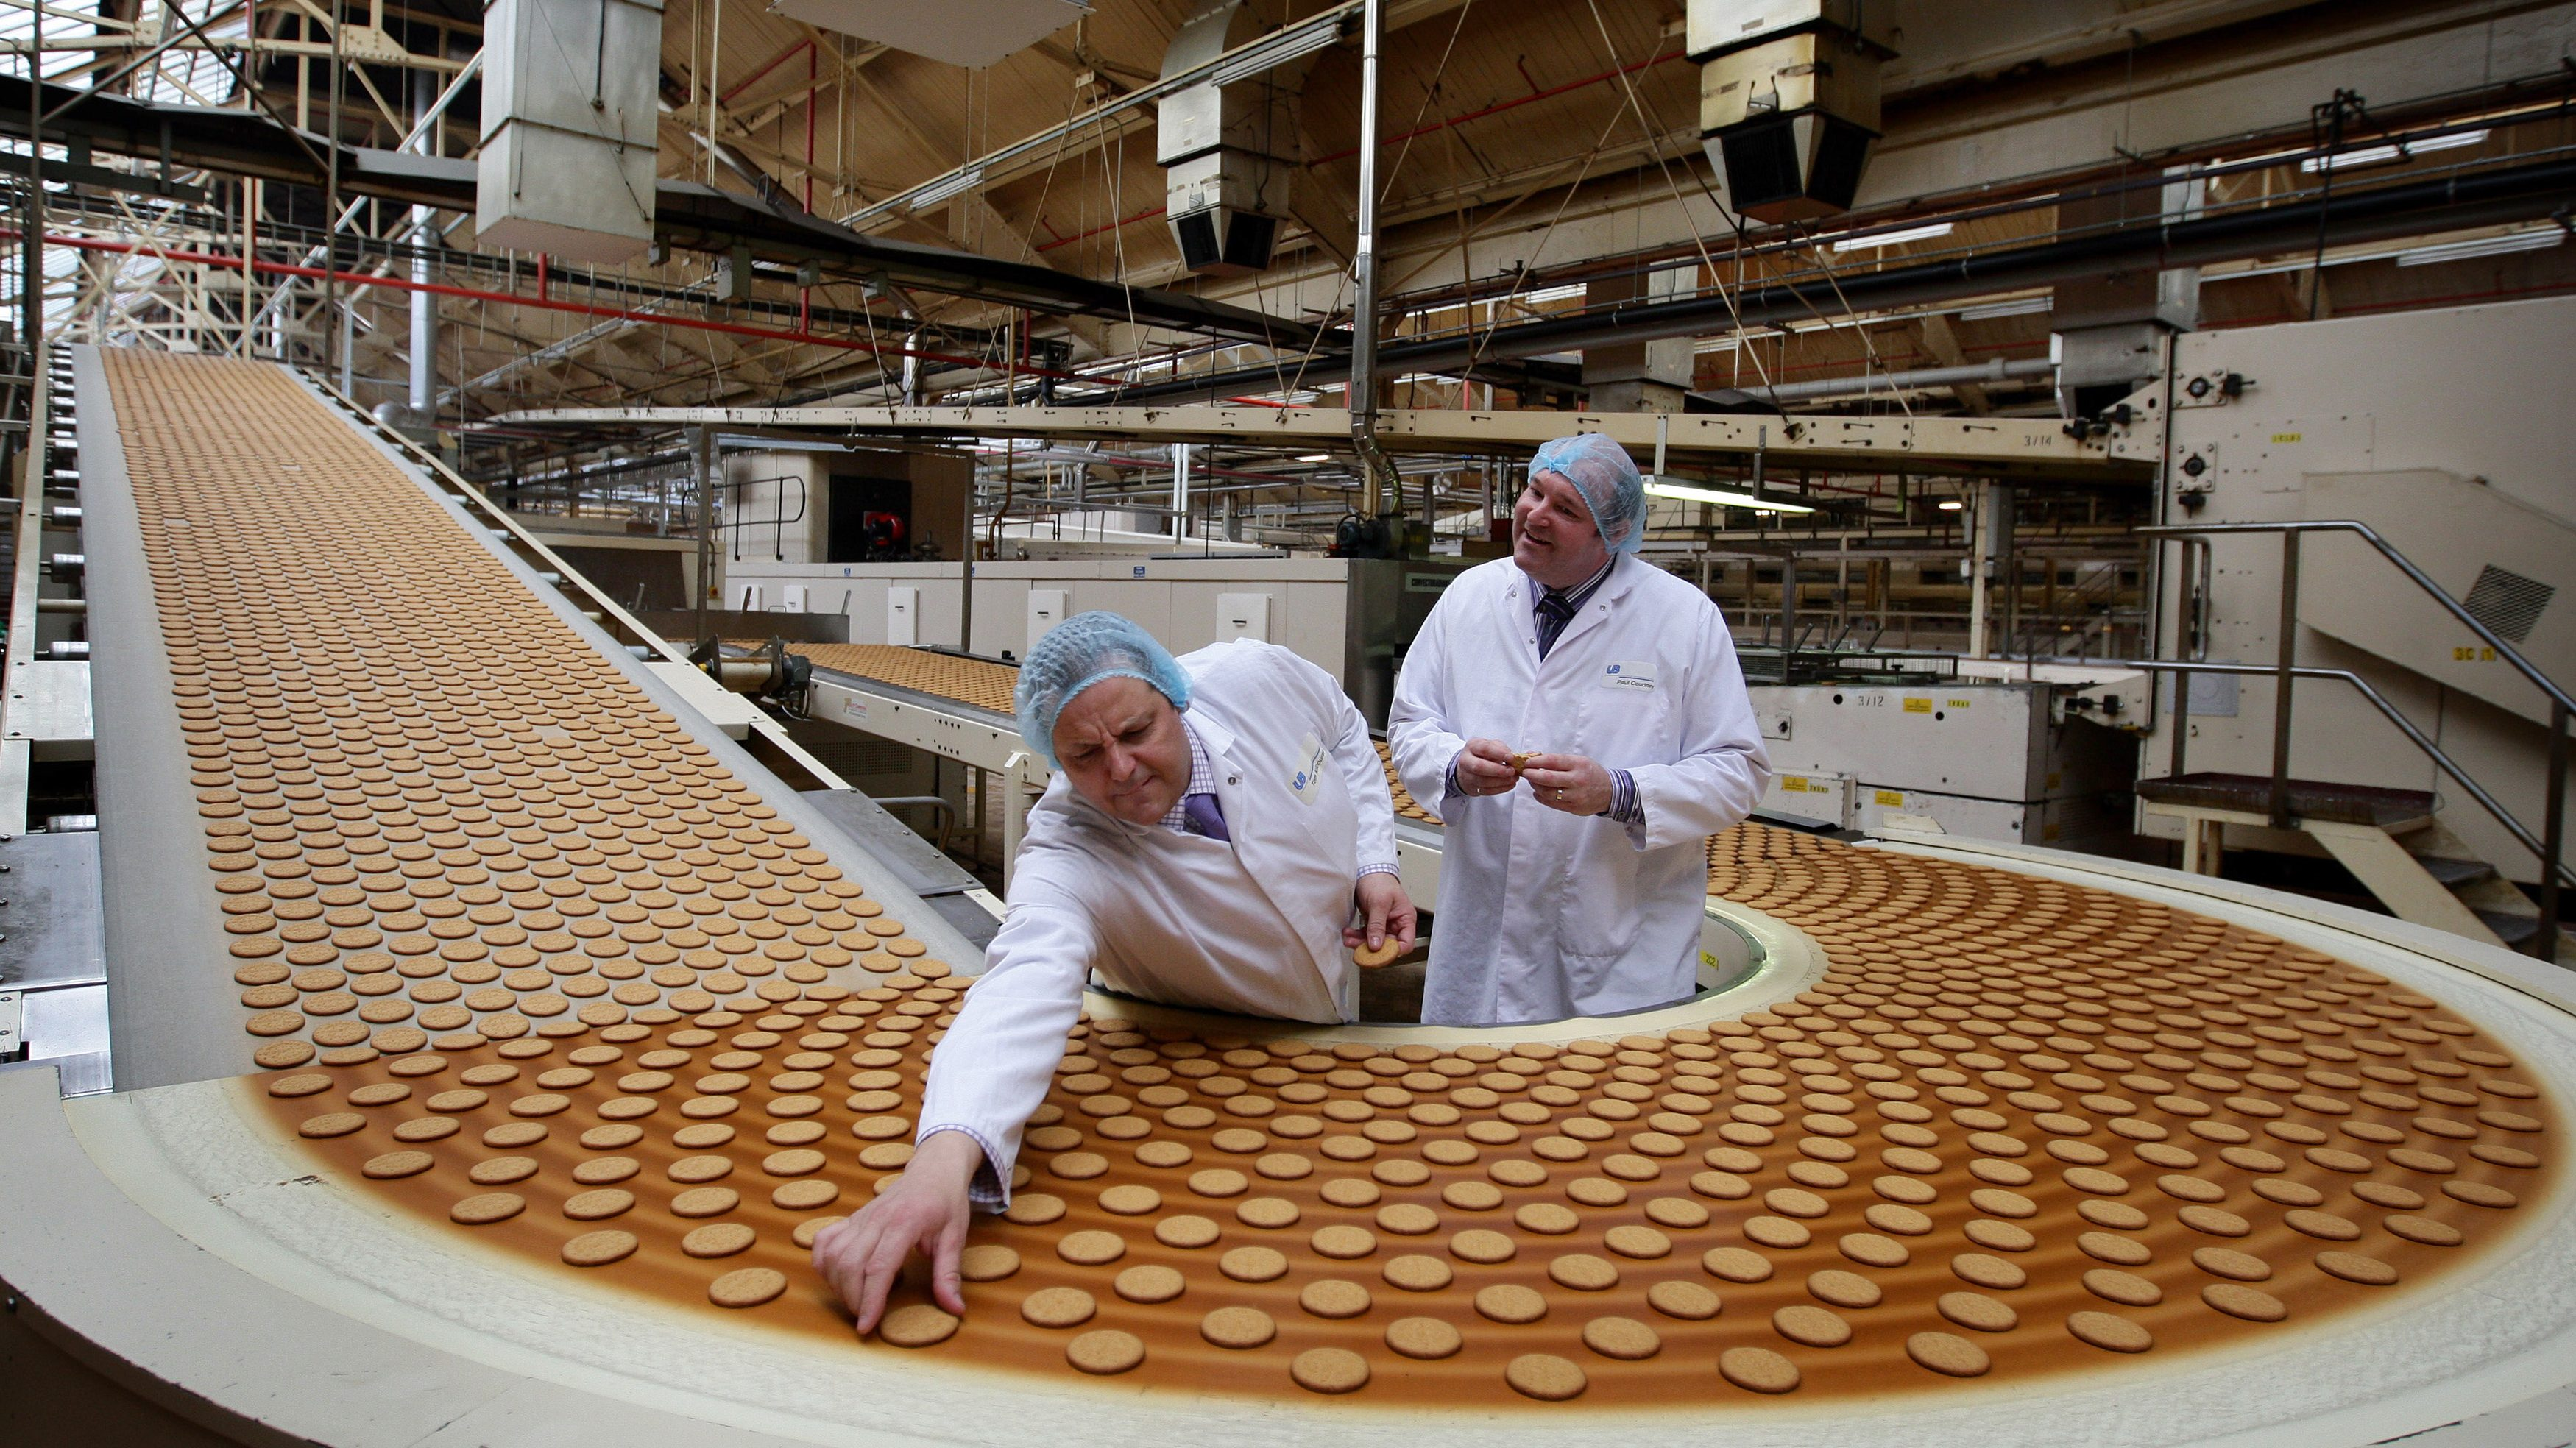 Design and Development Head Chef , Paul Courtney and Manufacturing Manager, Tom Kilcourse, pose for a photograph on a biscuit production line at the McVities factory in Stockport, northern England